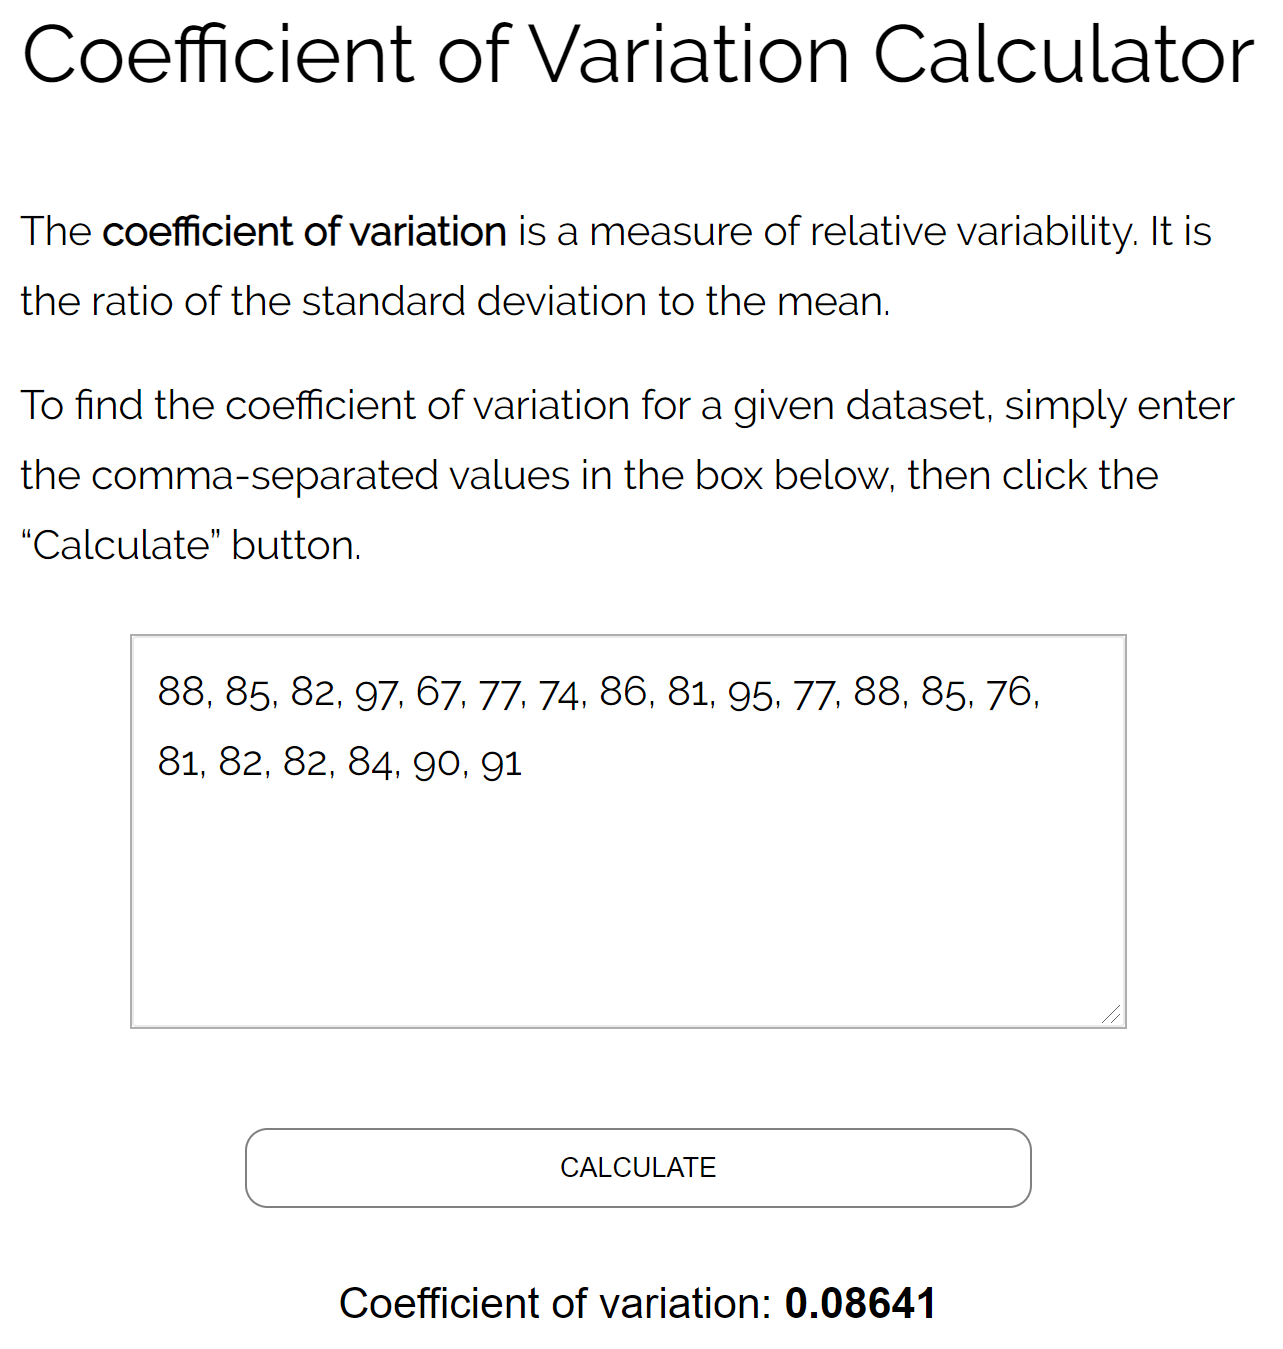 Coefficient of variation calculator example